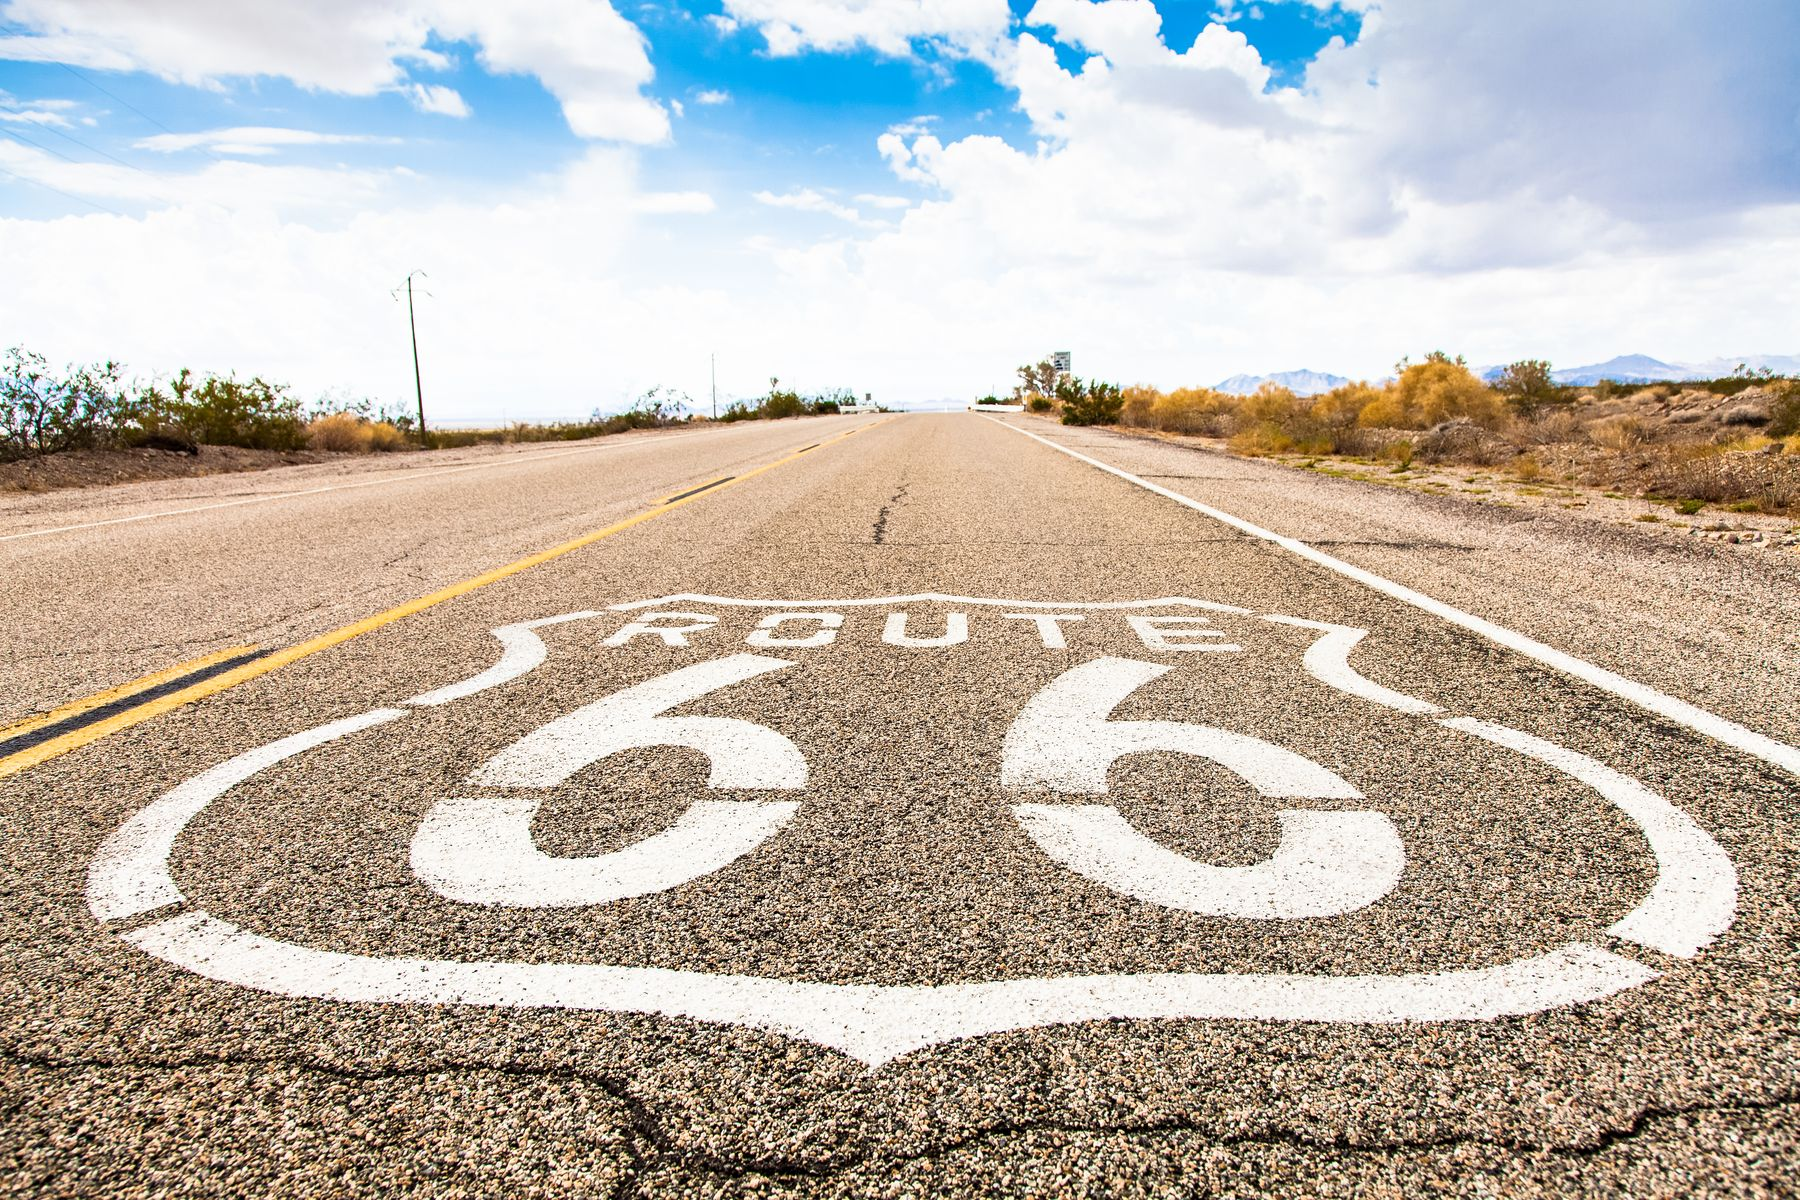 Famous Route 66 landmark on the road in Californian desert - Budget travel tips & deals to help you live the dream